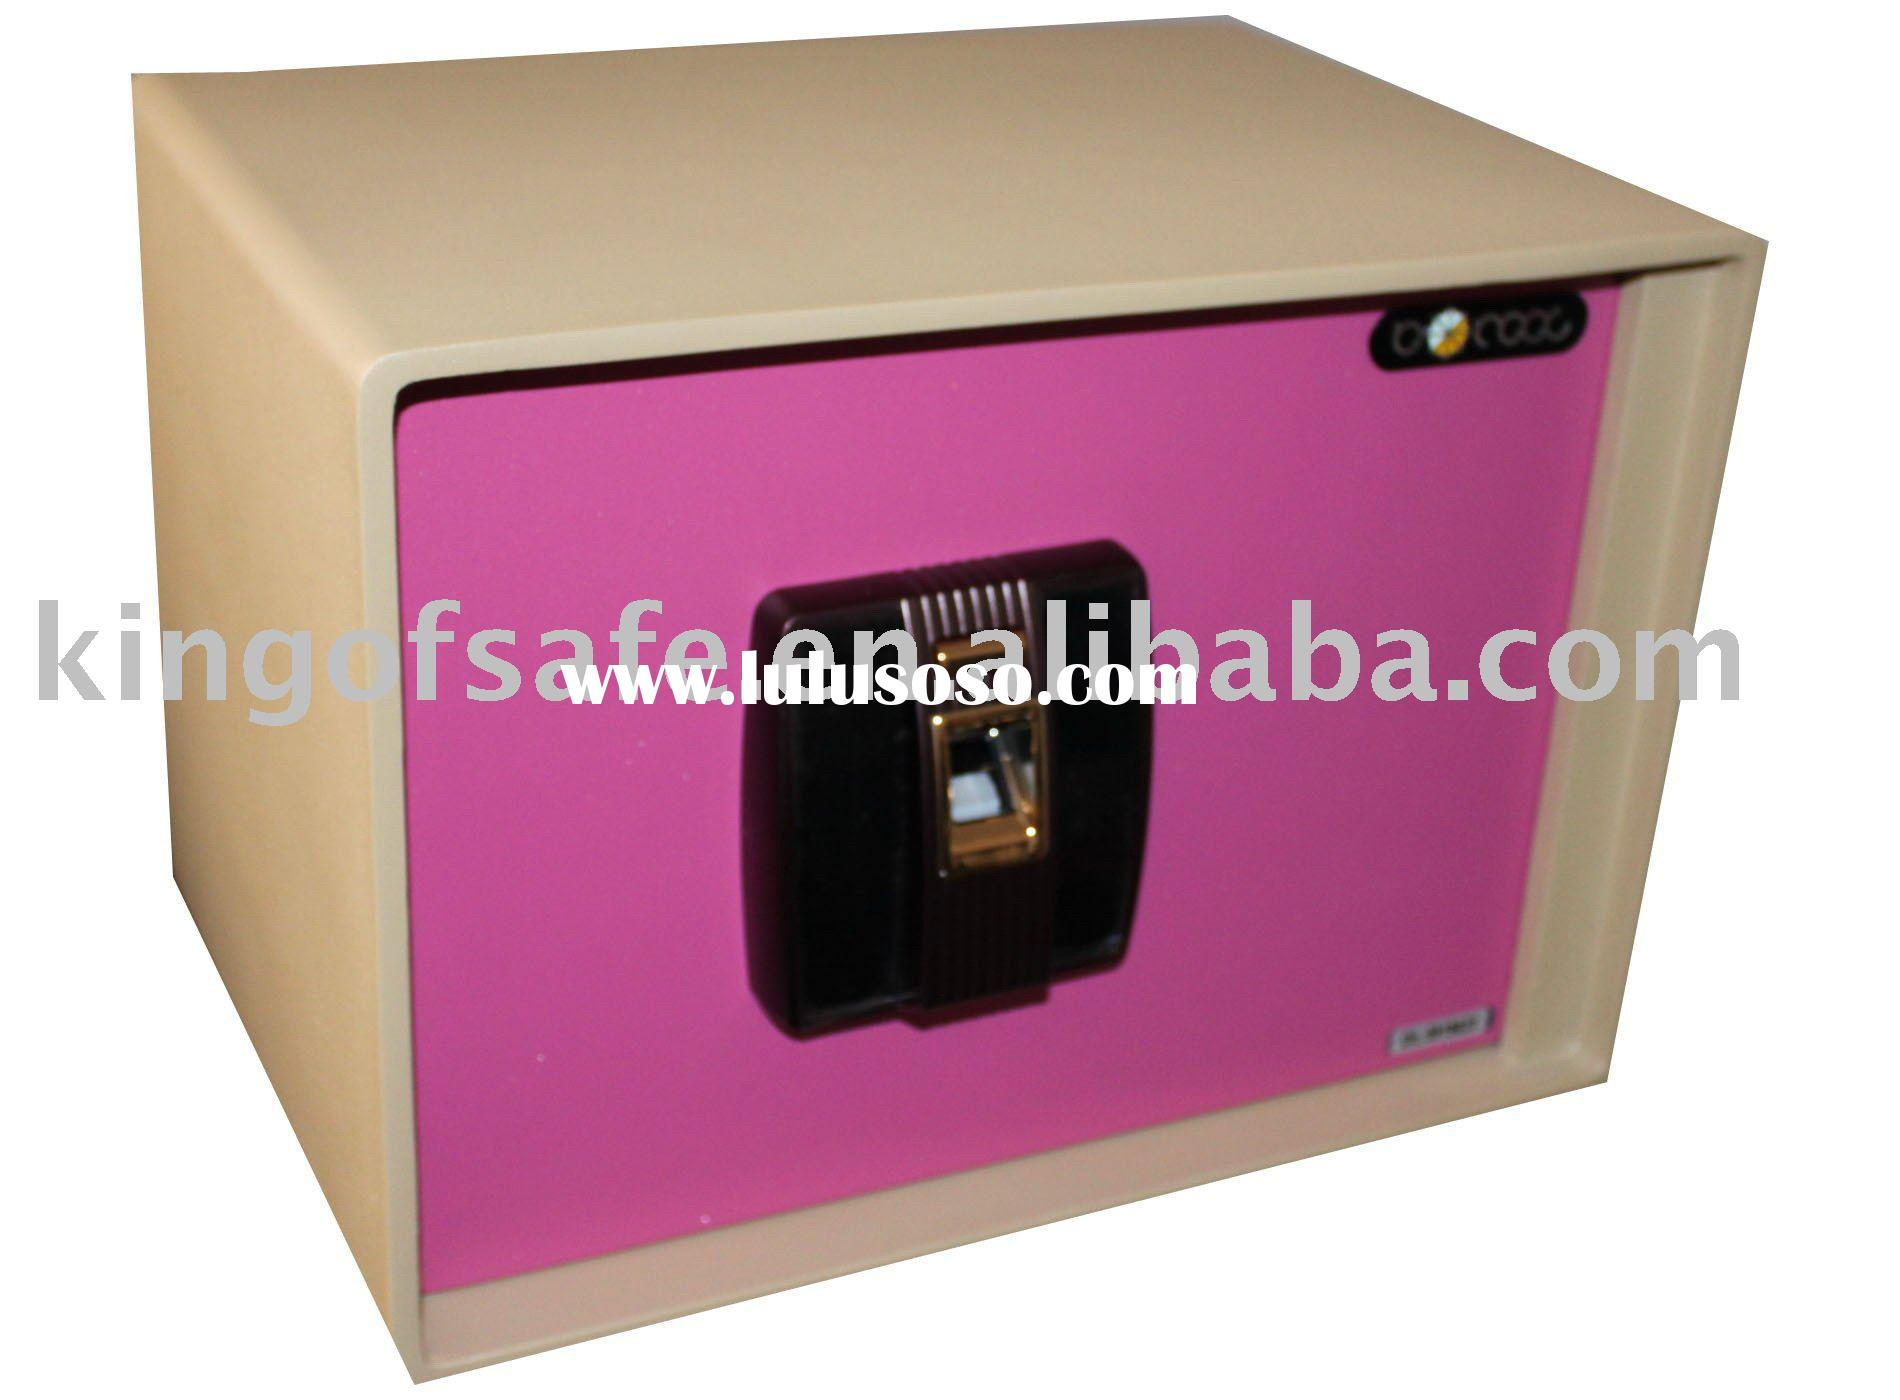 Safe Box,Fingerprint Safe Deposit Box, Electronic Safe